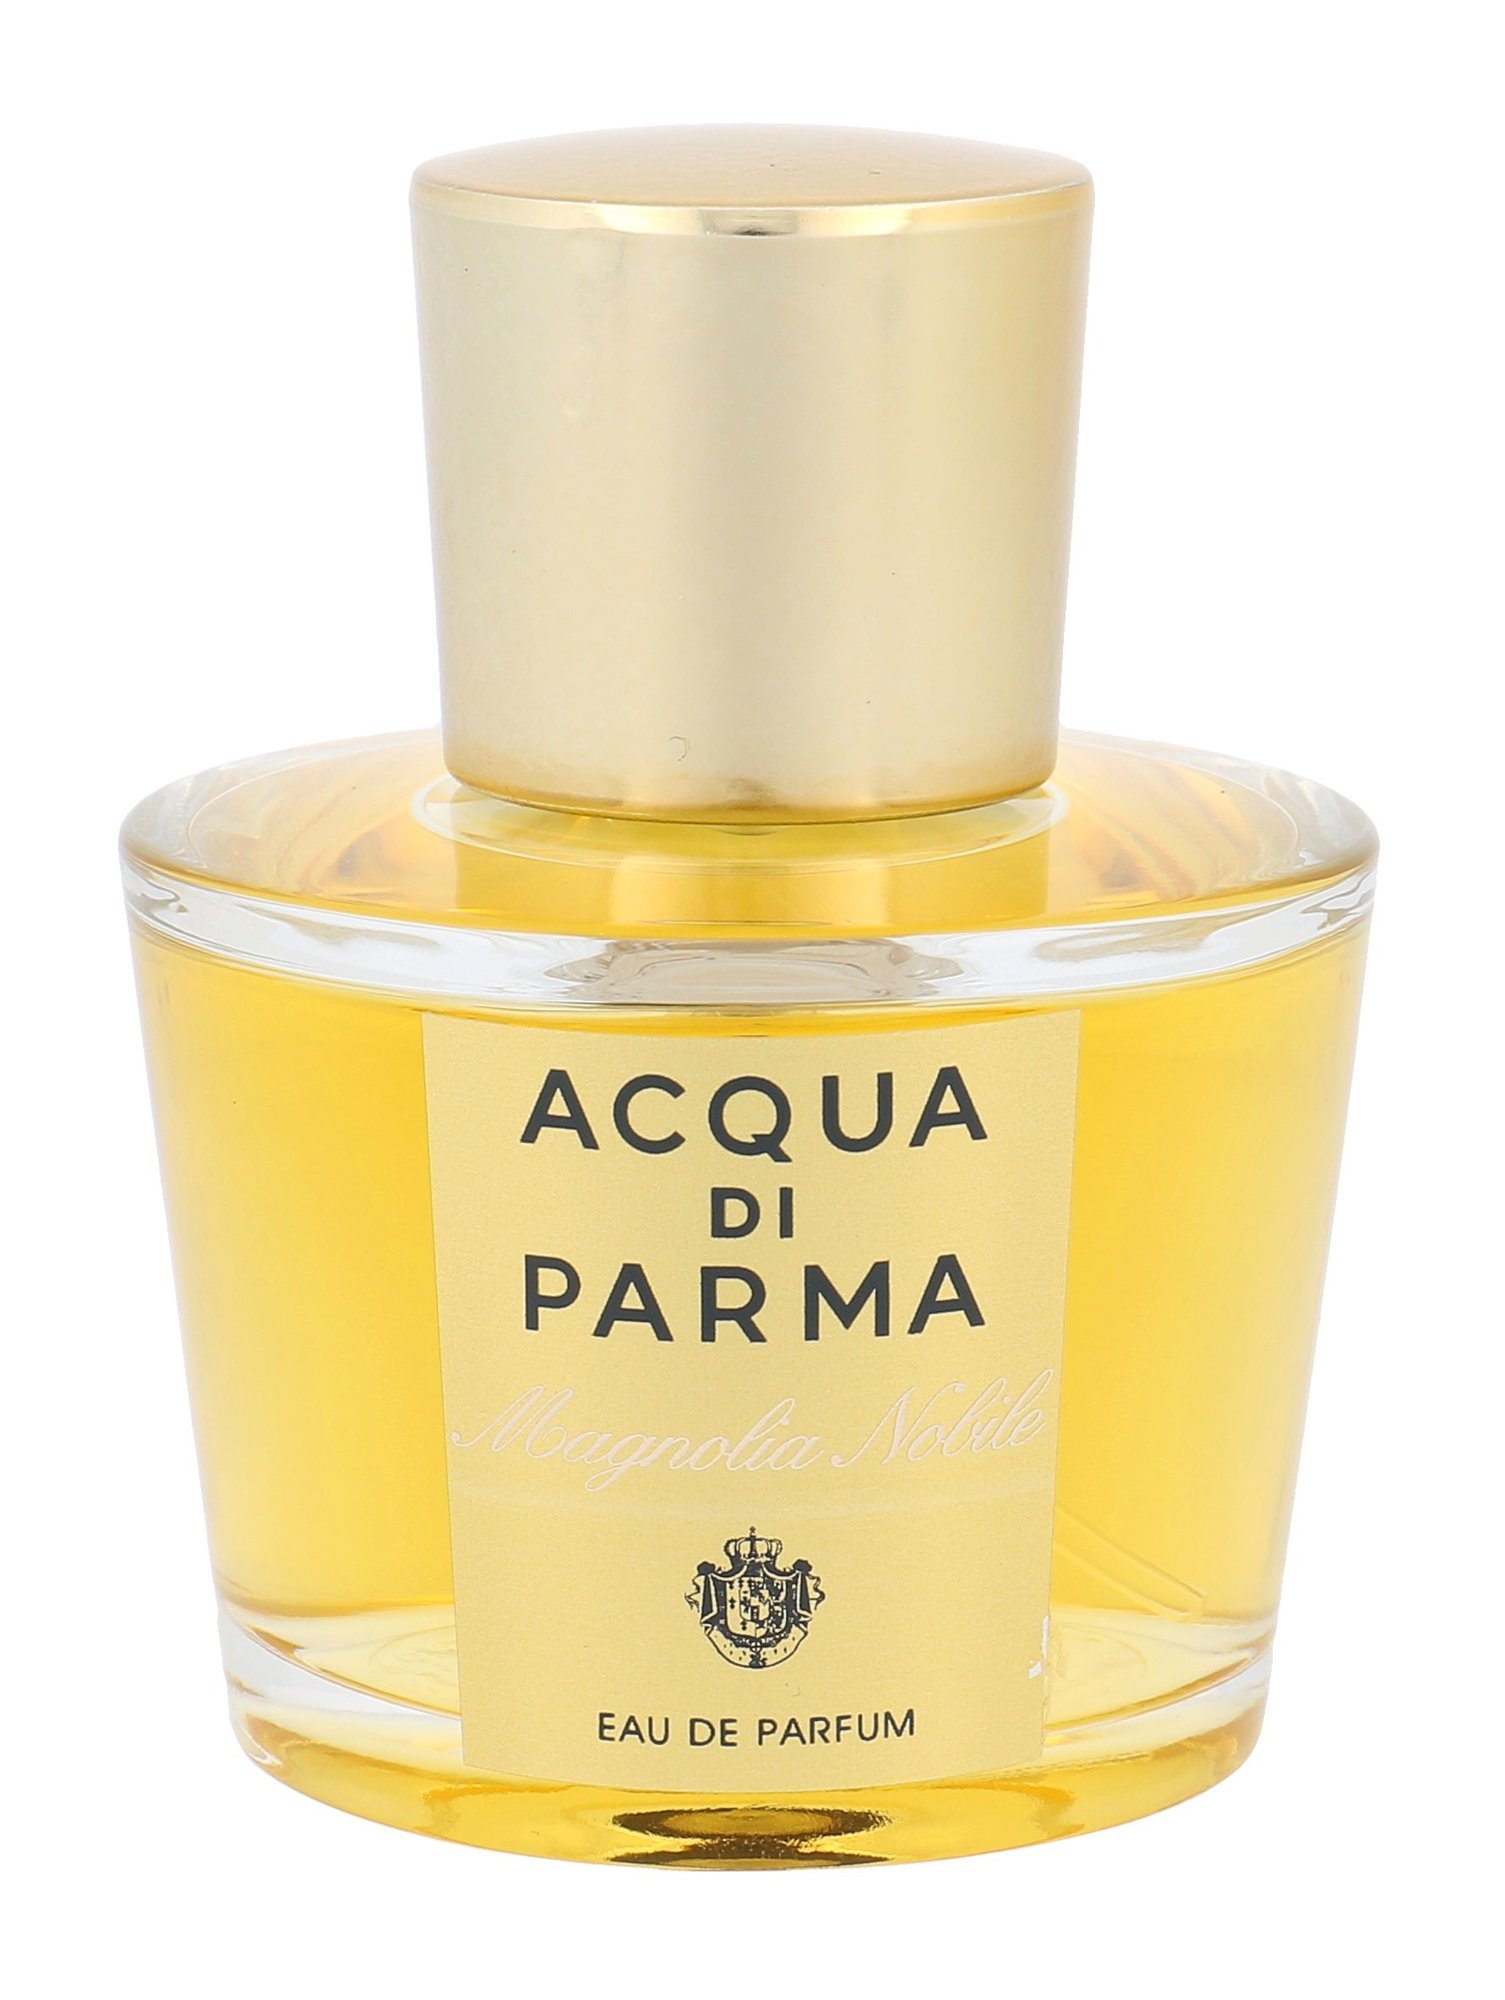 Acqua di Parma Magnolia Nobile EDP 50ml